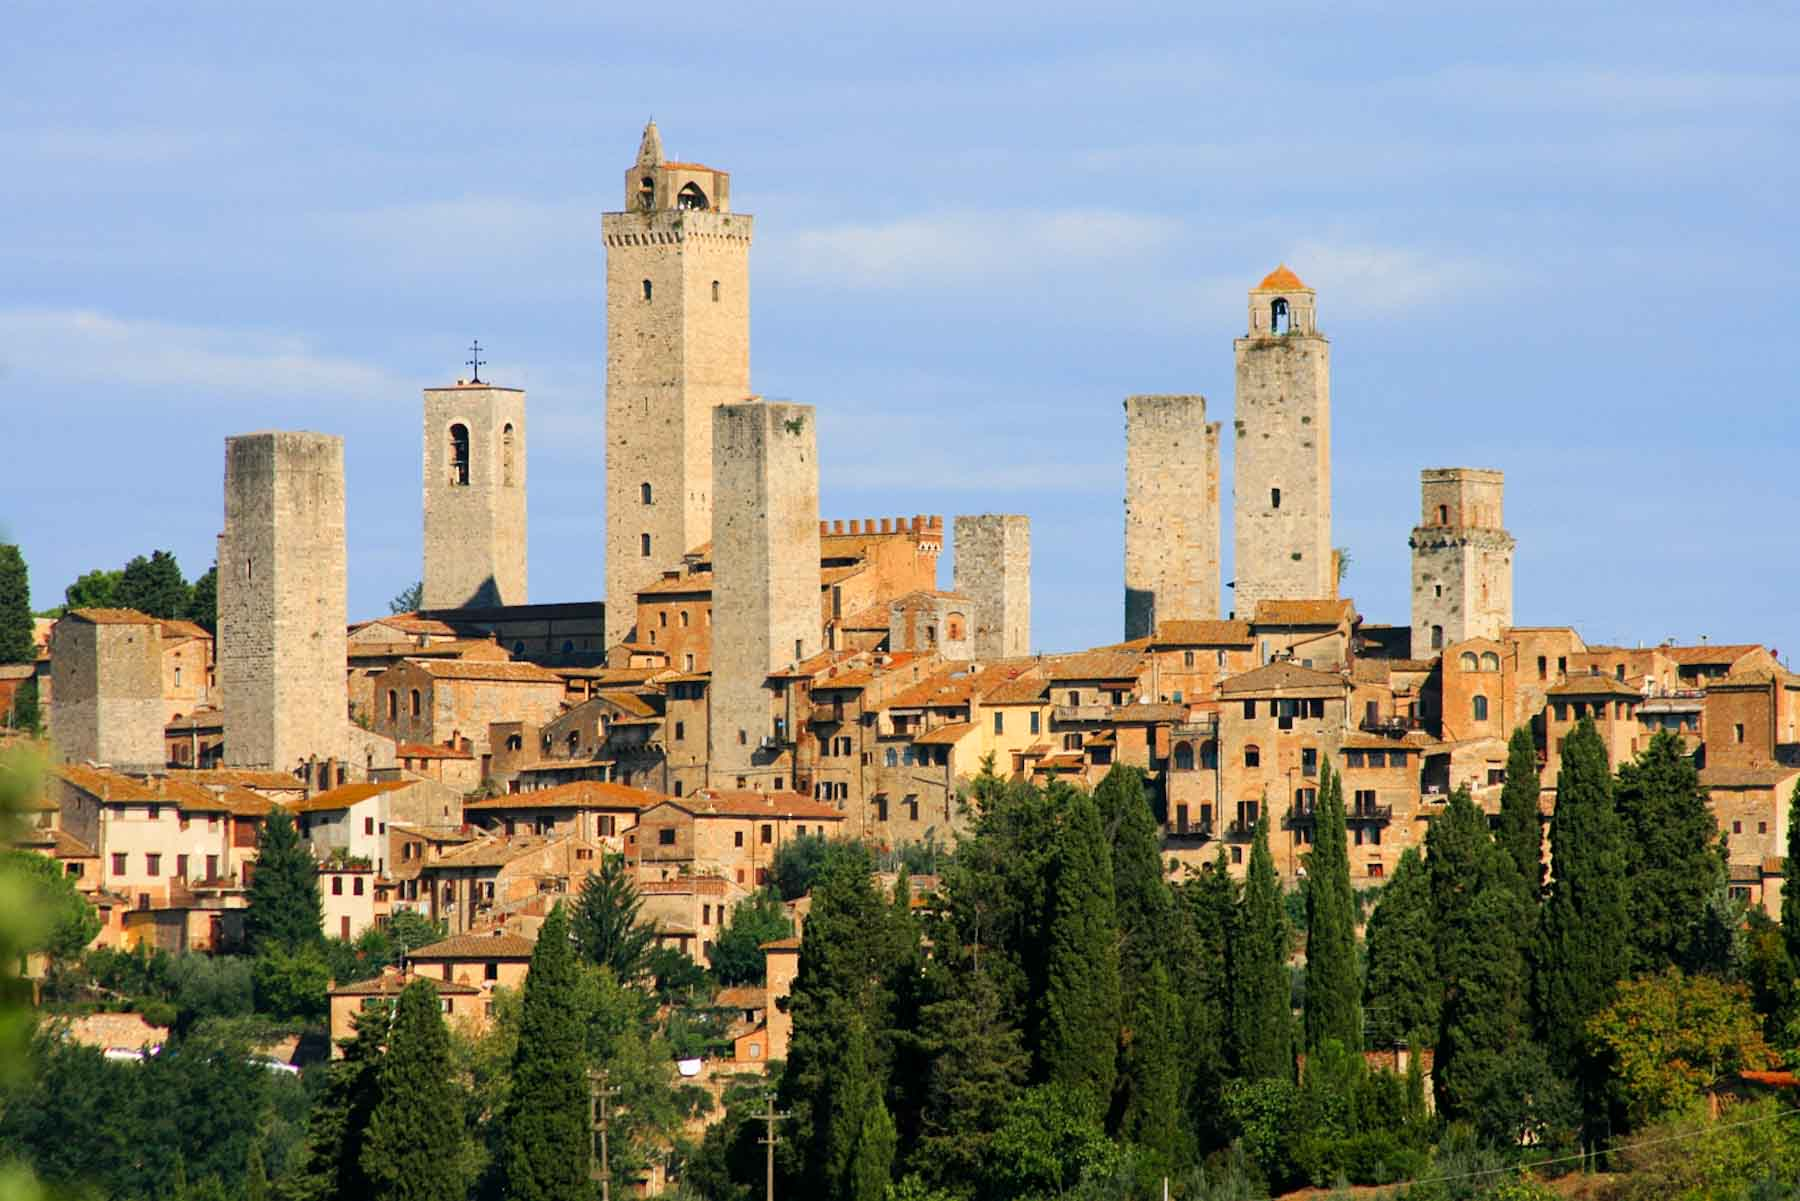 San Gimignano 5 bell towers